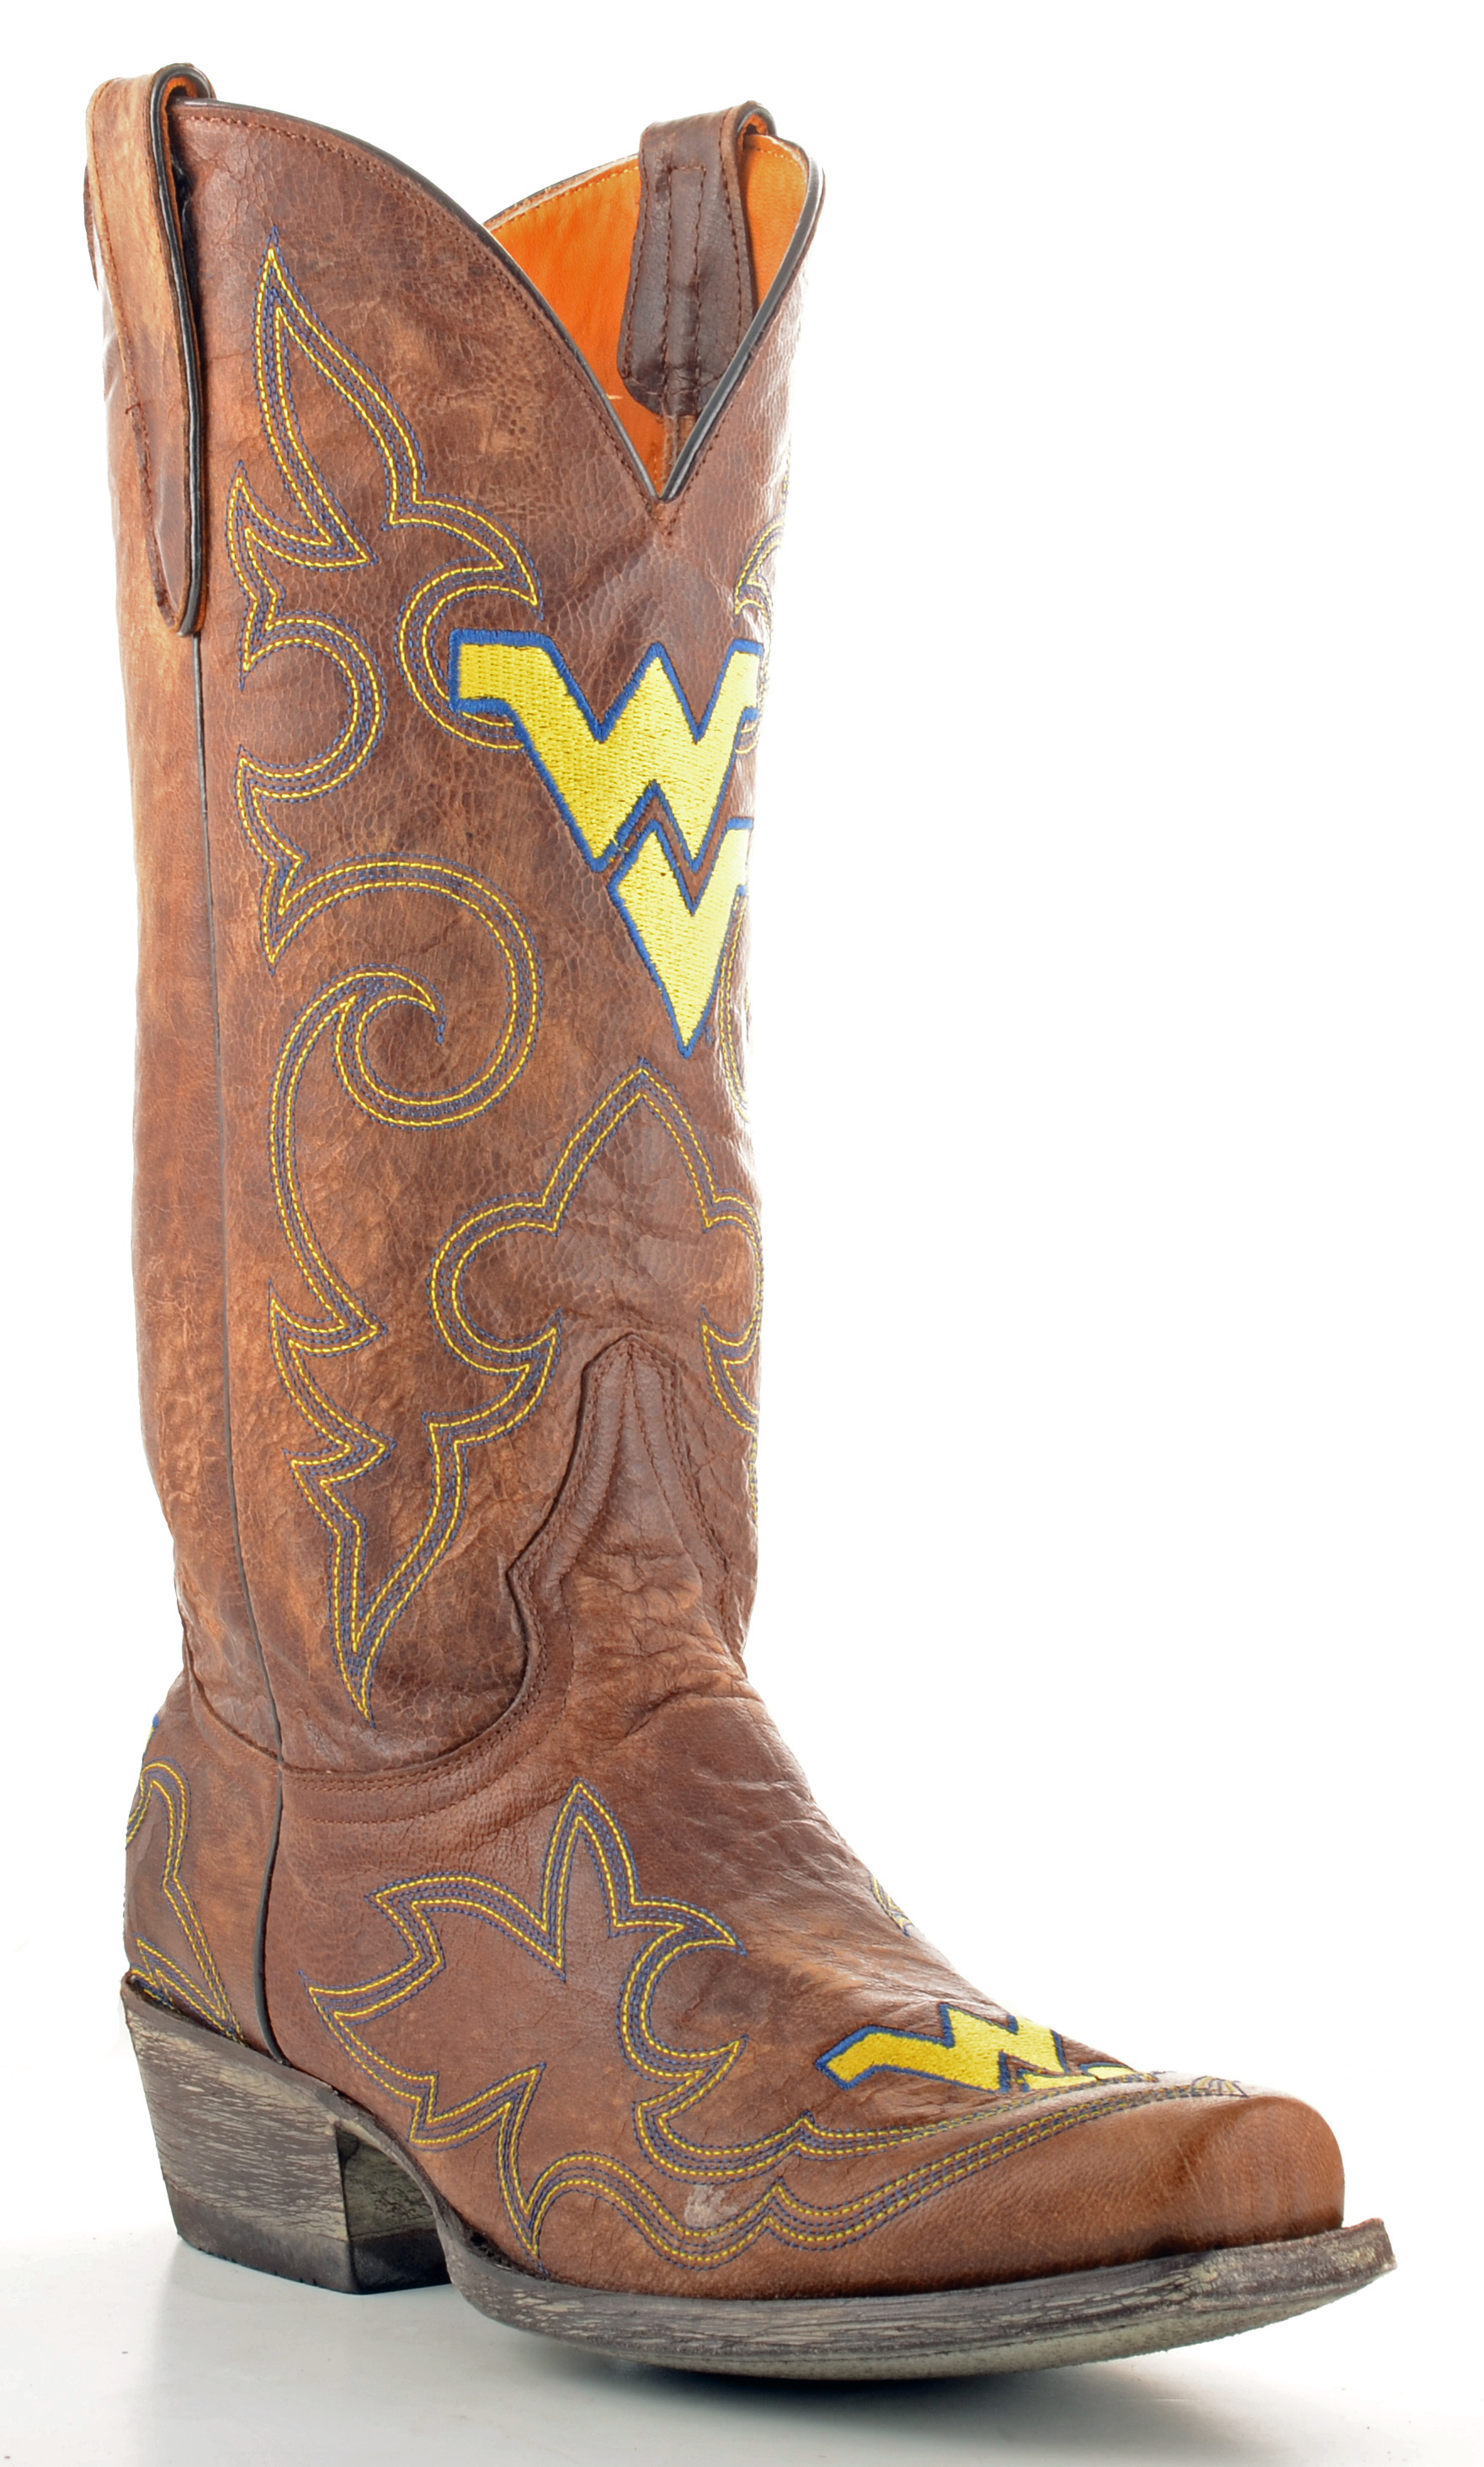 Gameday Boots Mens Brass Leather West Virginia Cowboy Boots (Size 11.5) New by GameDay Boots